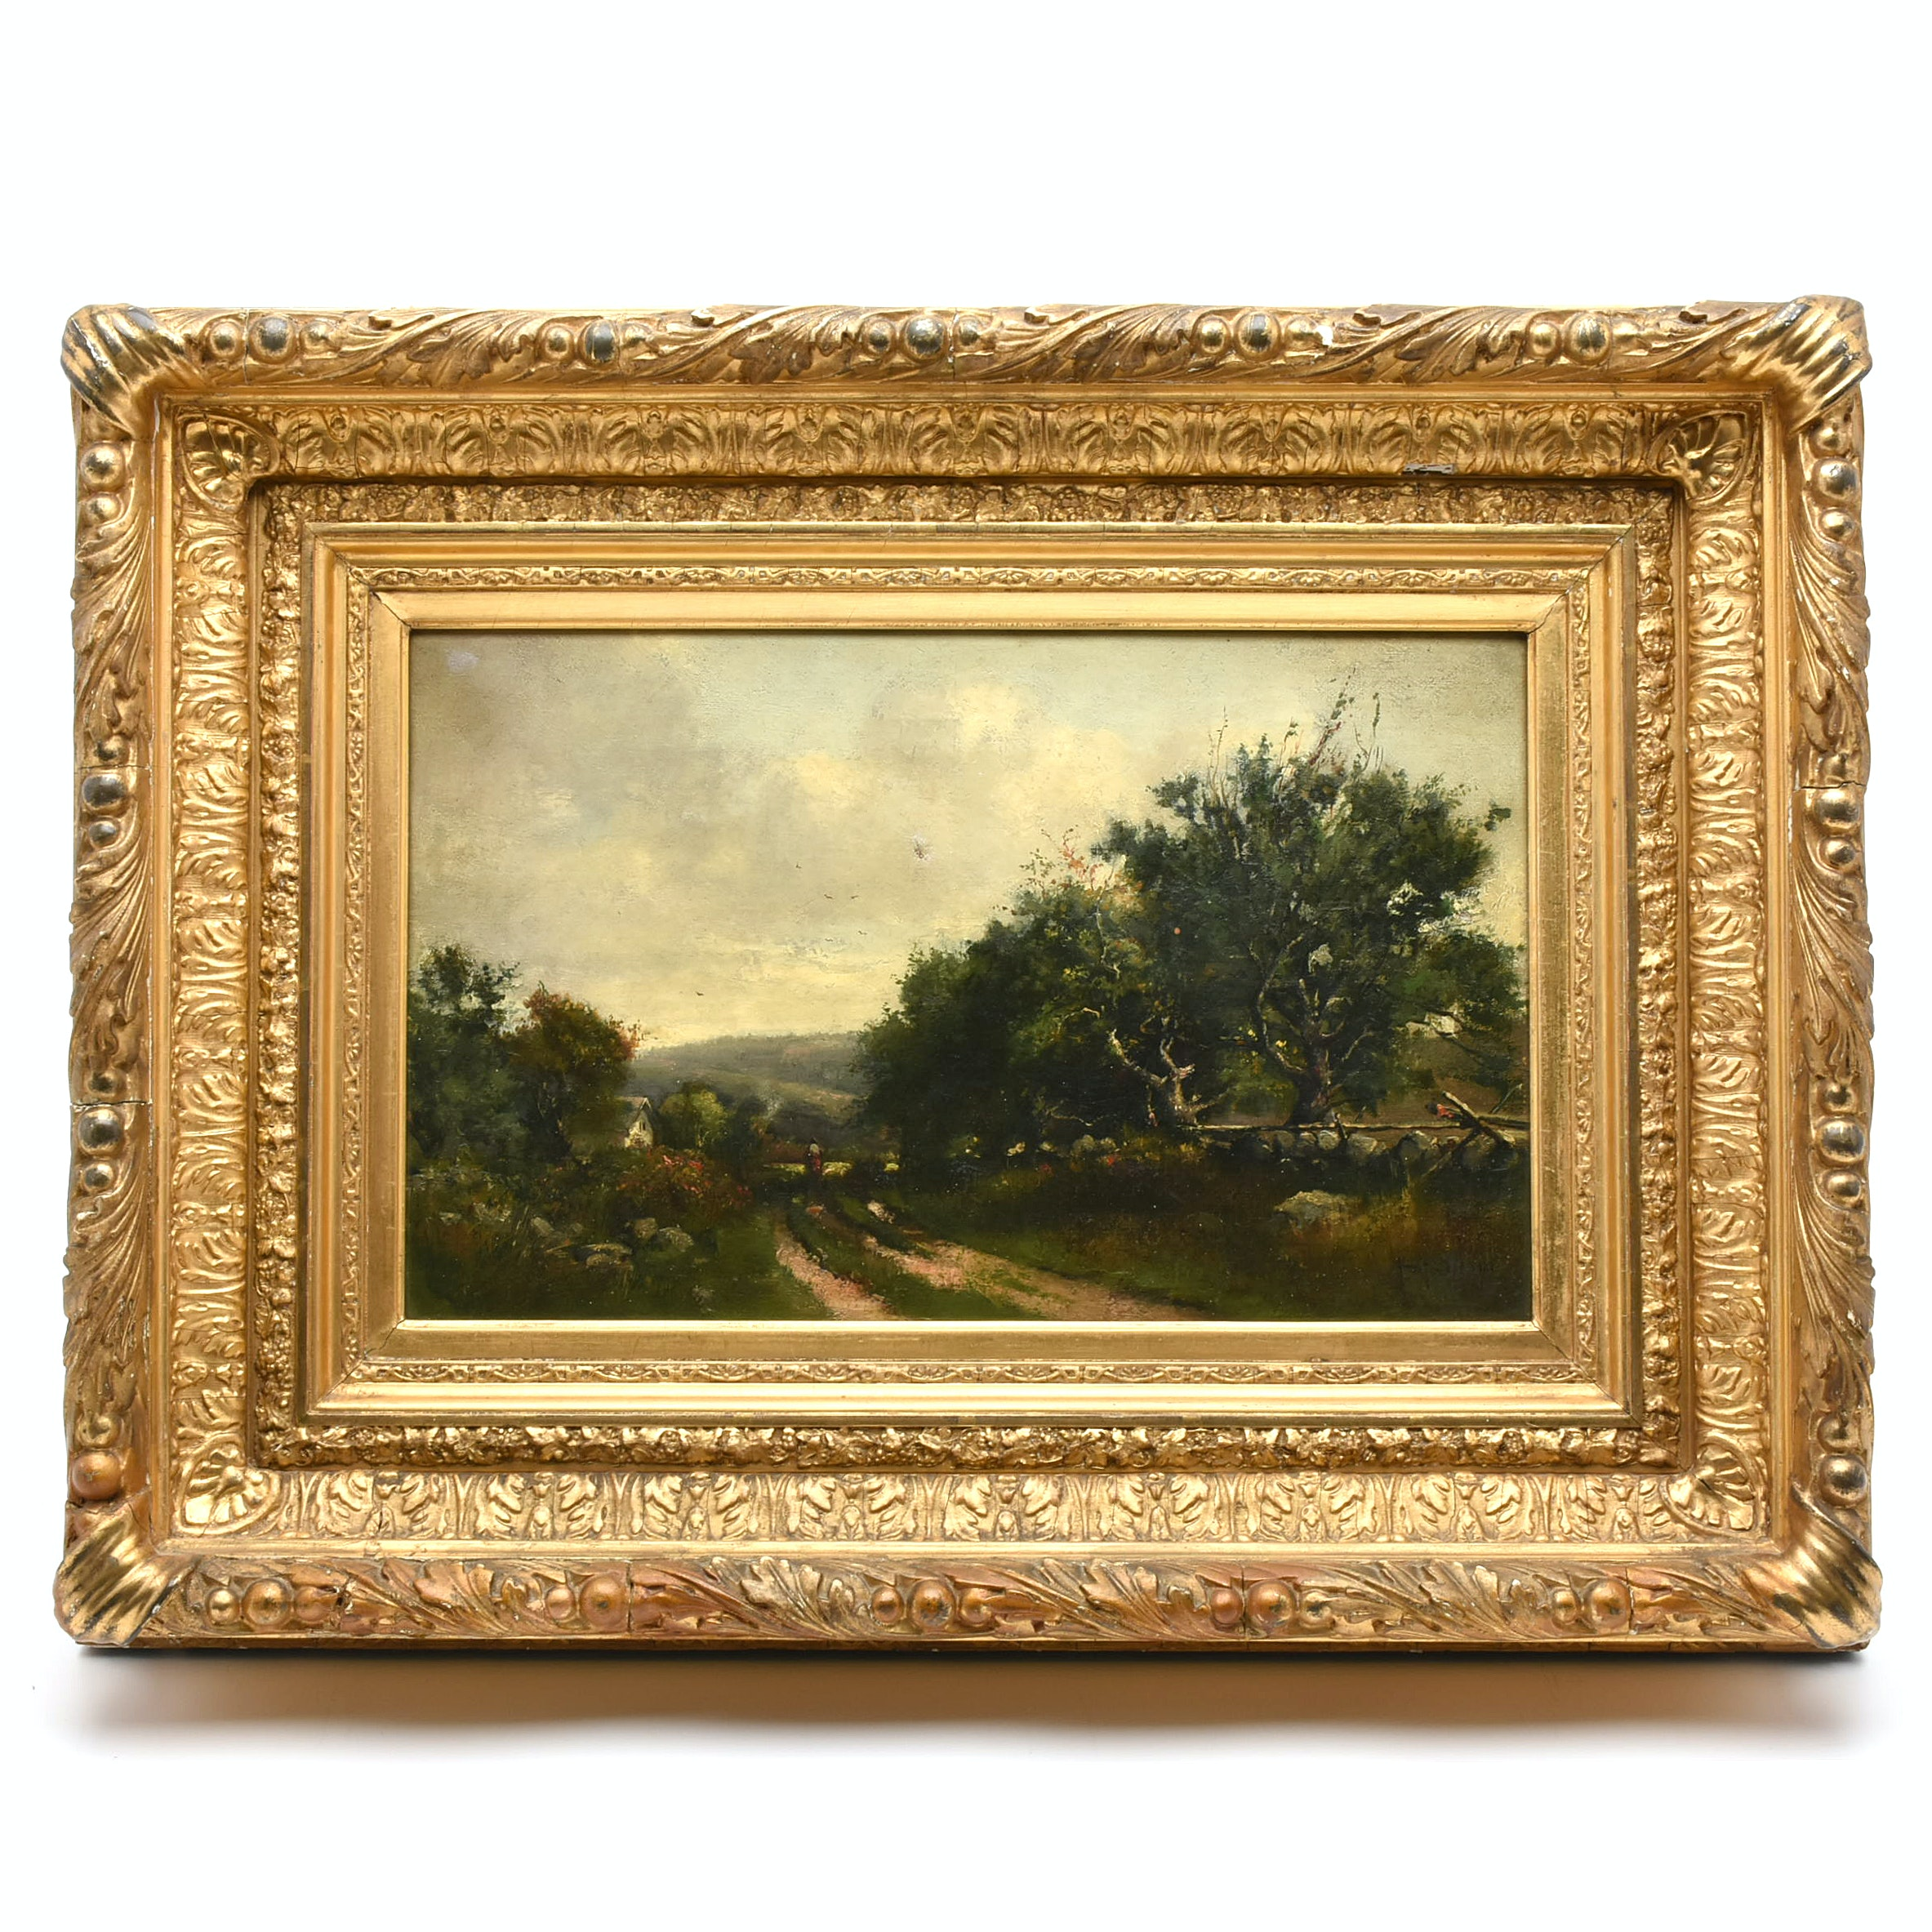 "Thadeus Defrees 1886 Oil Painting ""View on the 5 Mile Road"""